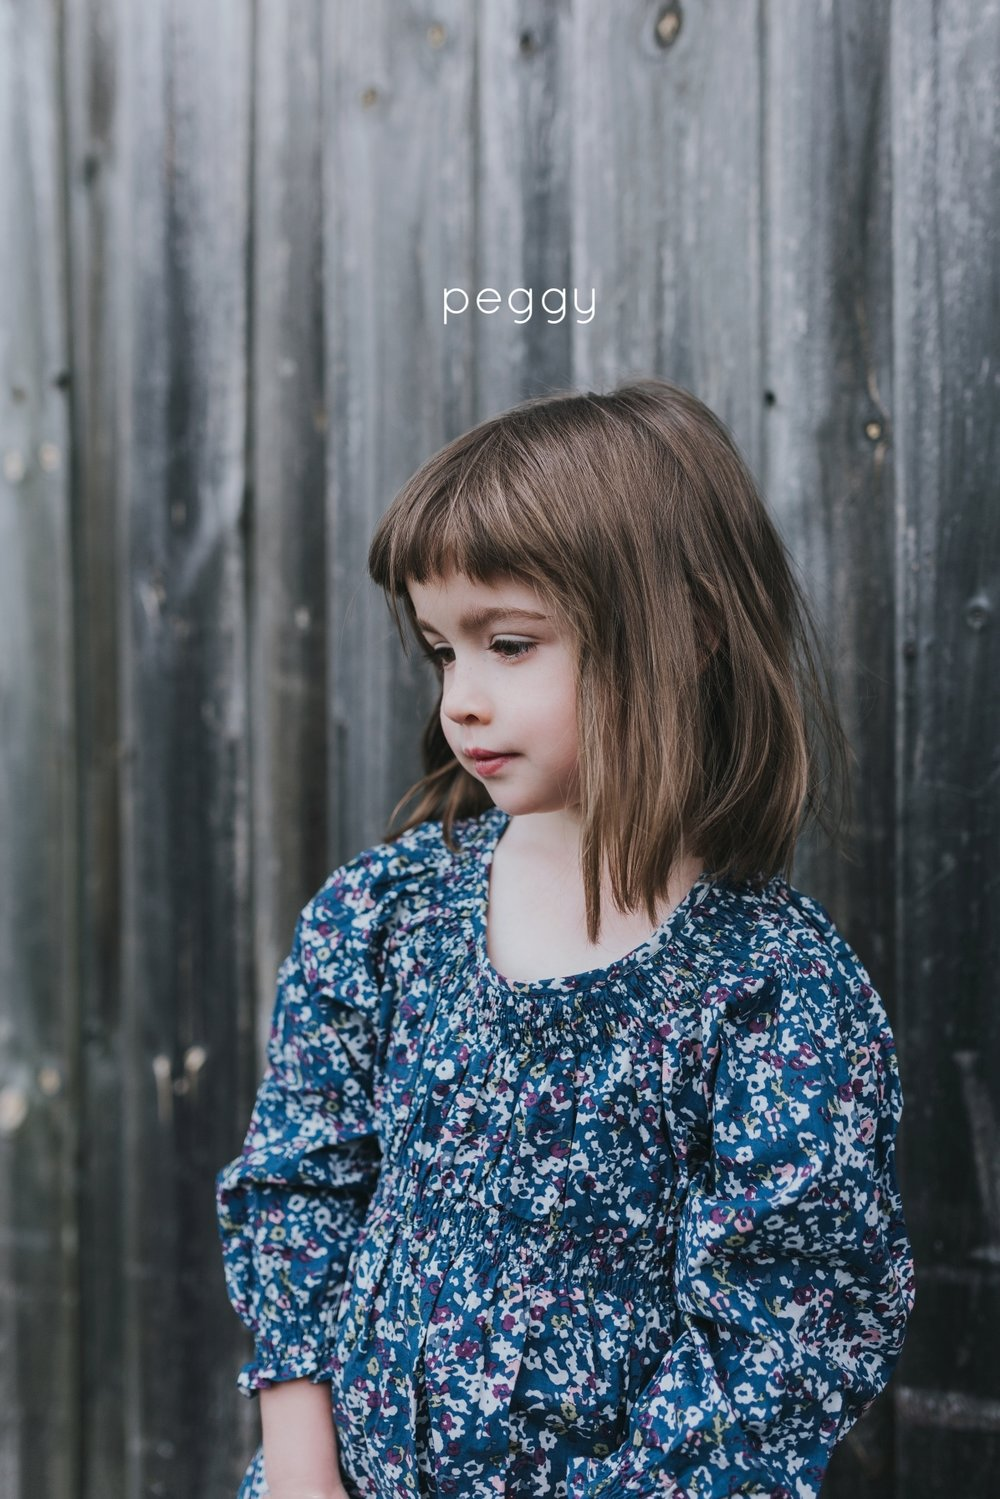 girl-kids-fashion-photography-siida-hobart-peggy.jpg